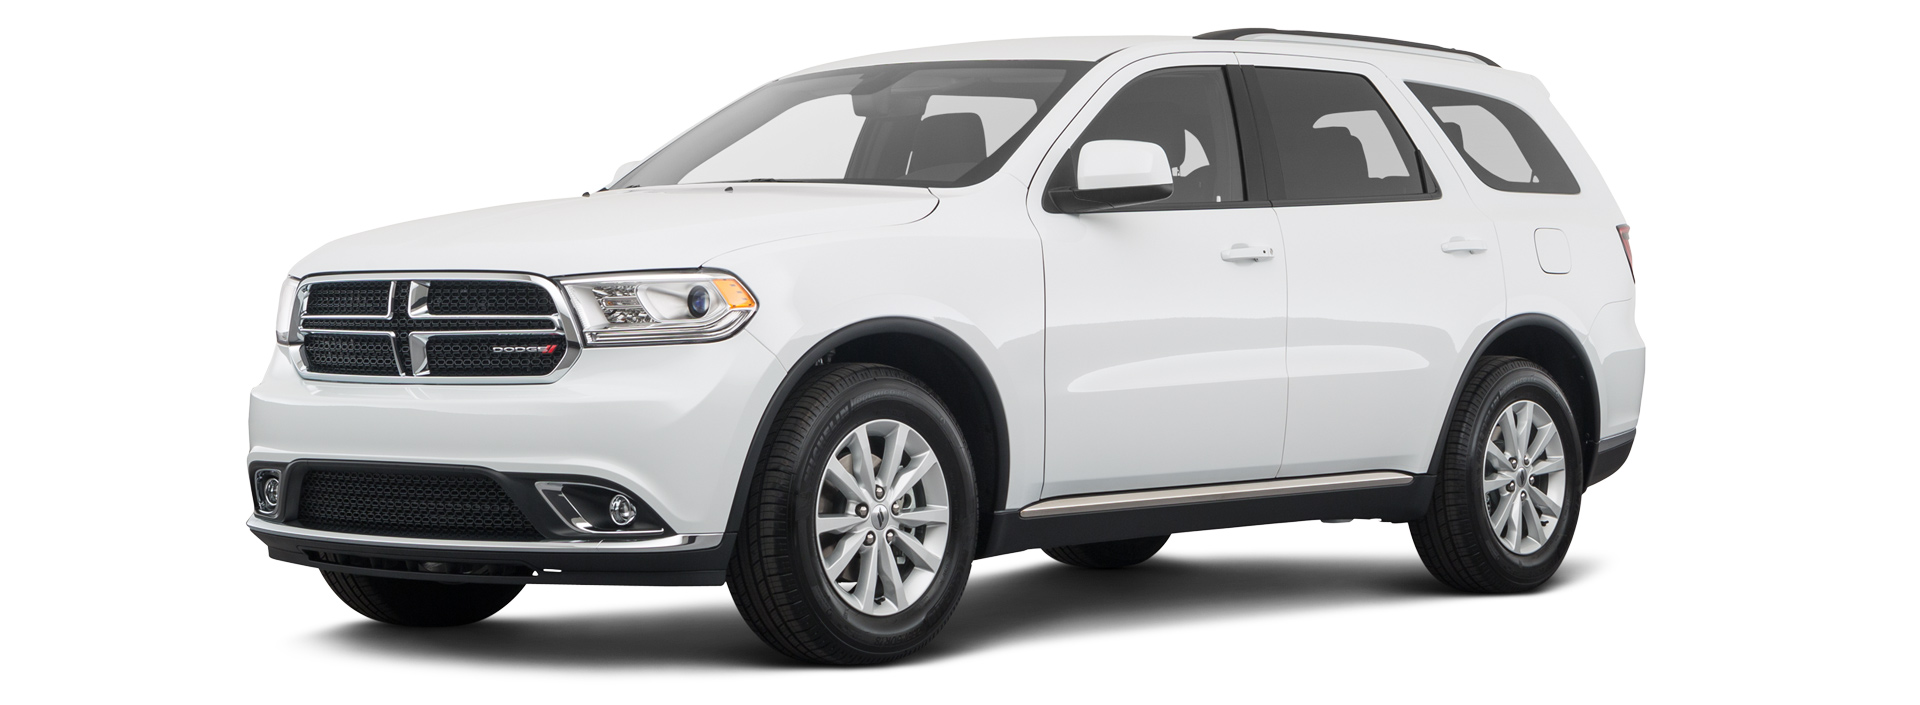 Dodge Durango for sale in Warrenton Virginia